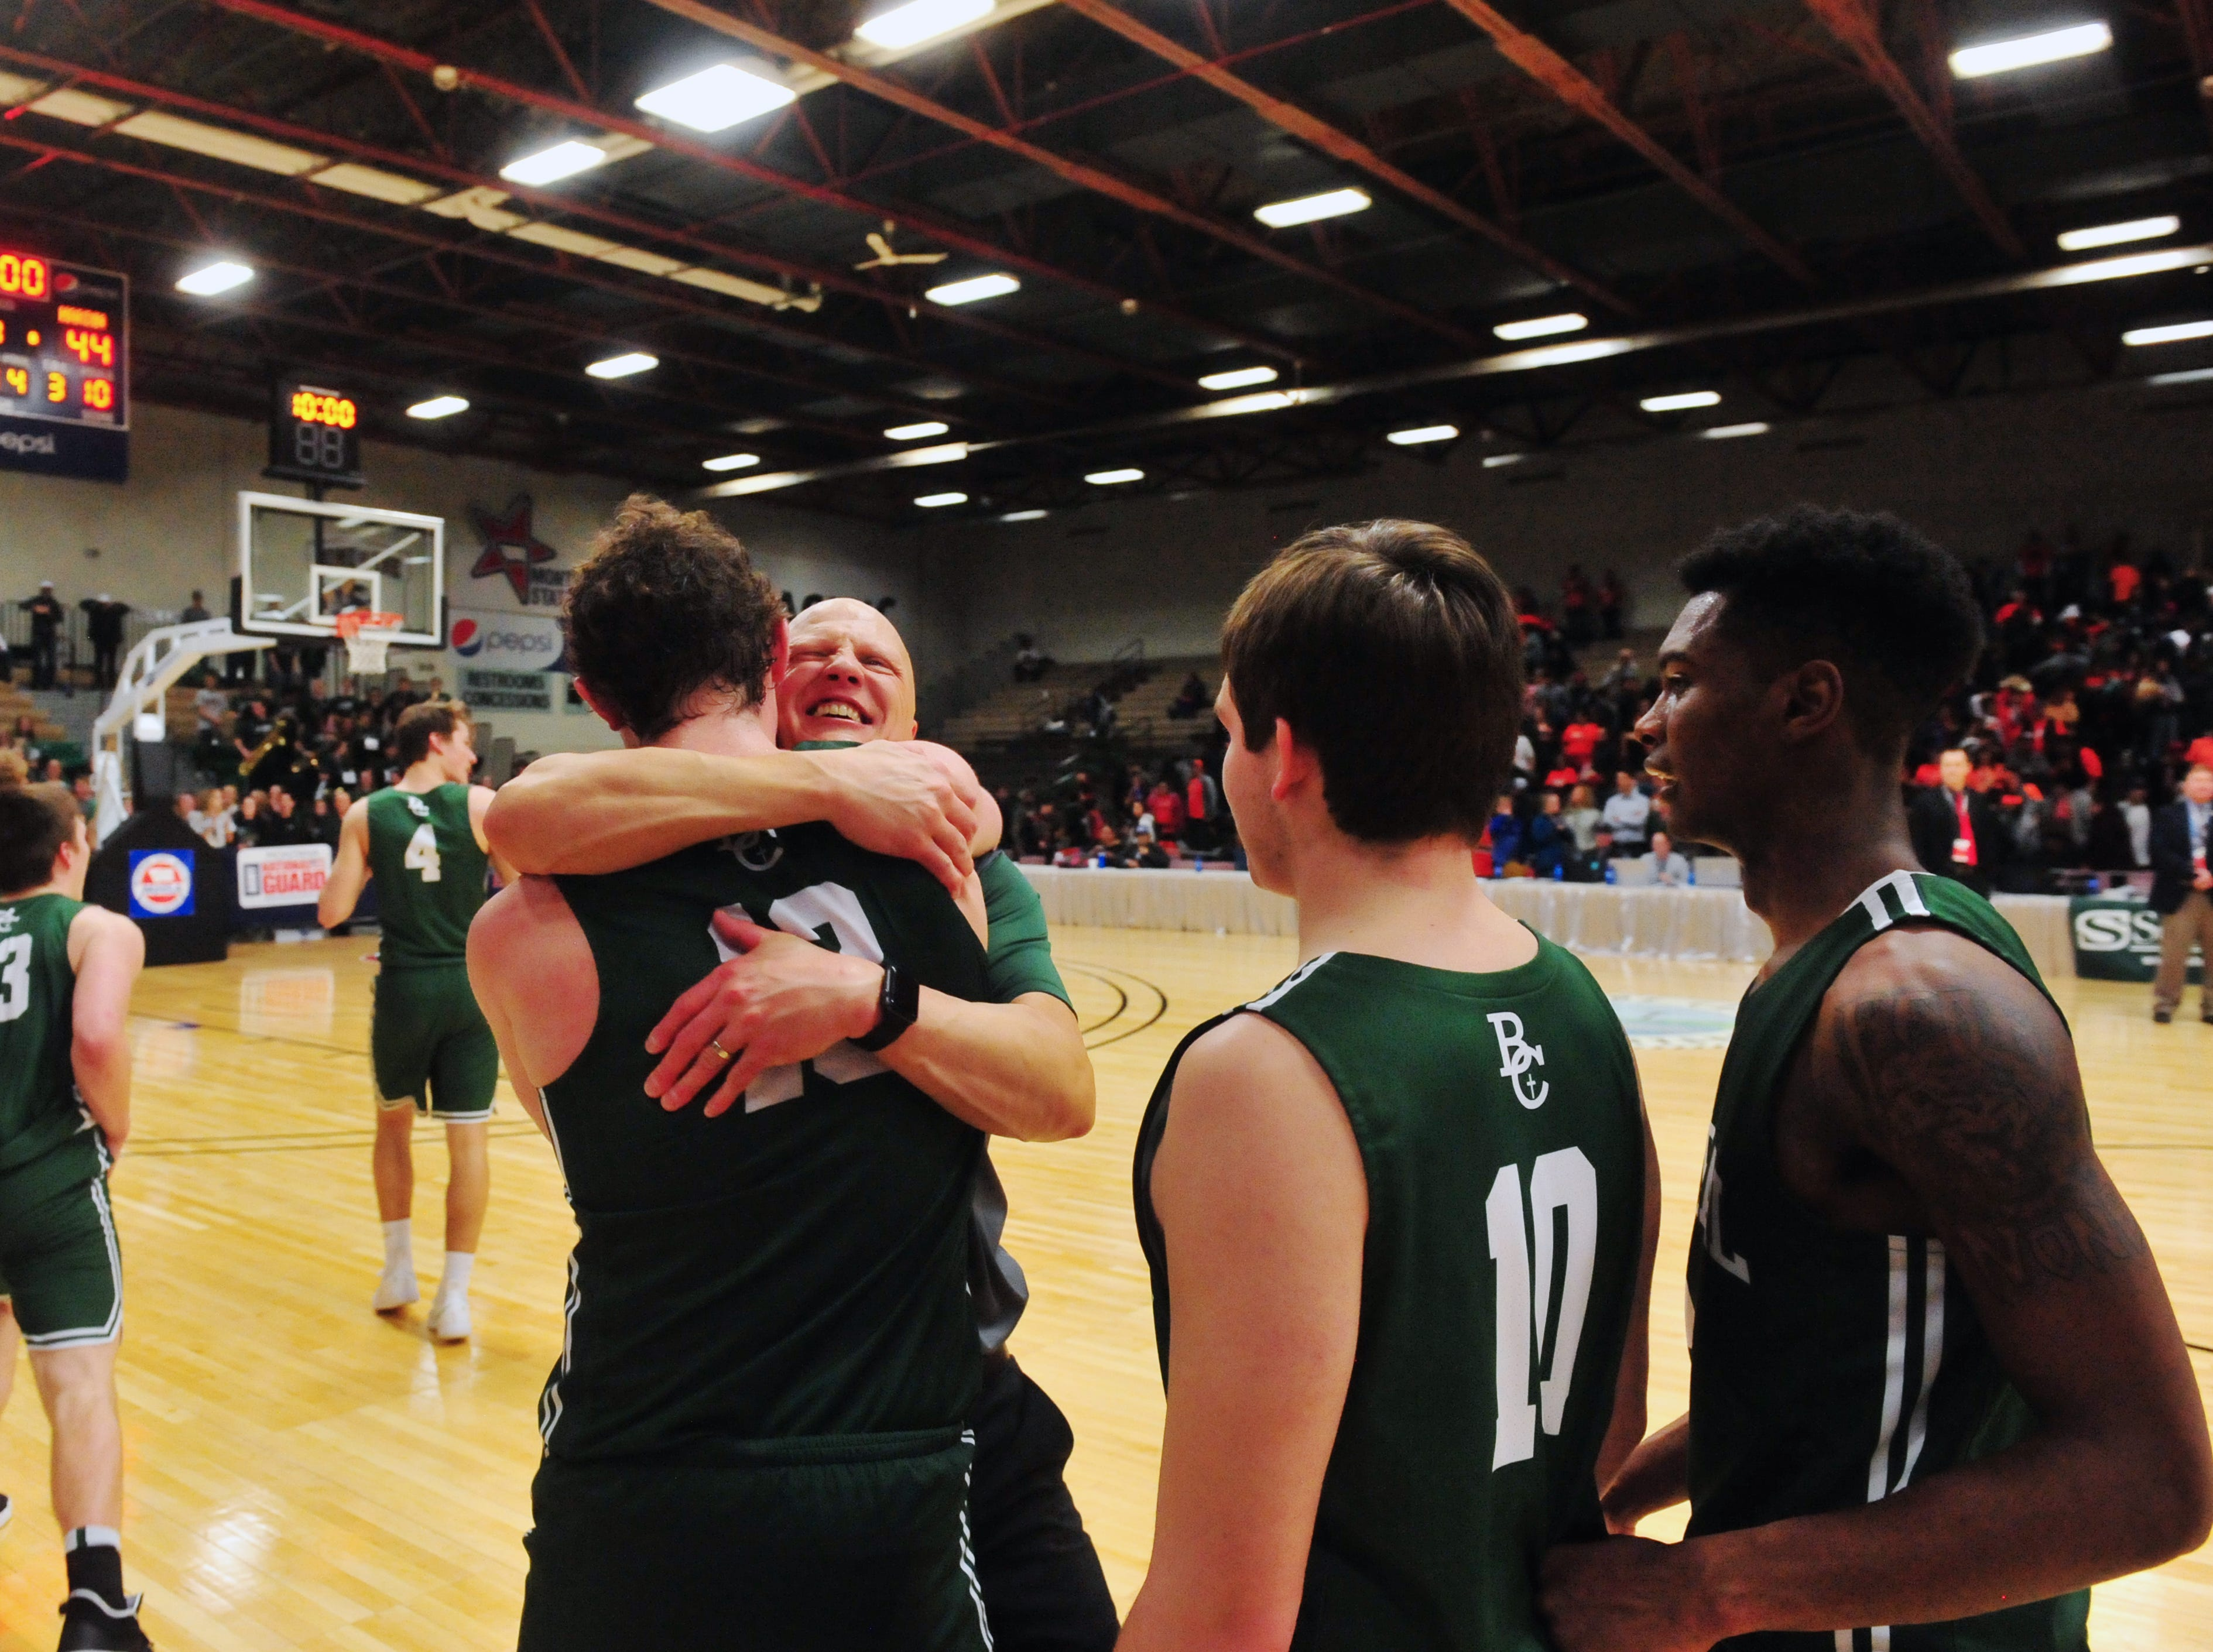 Billings Central coach Jim Stergar congratulates his team on their 62-44 victory over Hardin in the championship game of the State Class A Basketball Tournament in the Four Seasons Arena, Saturday.